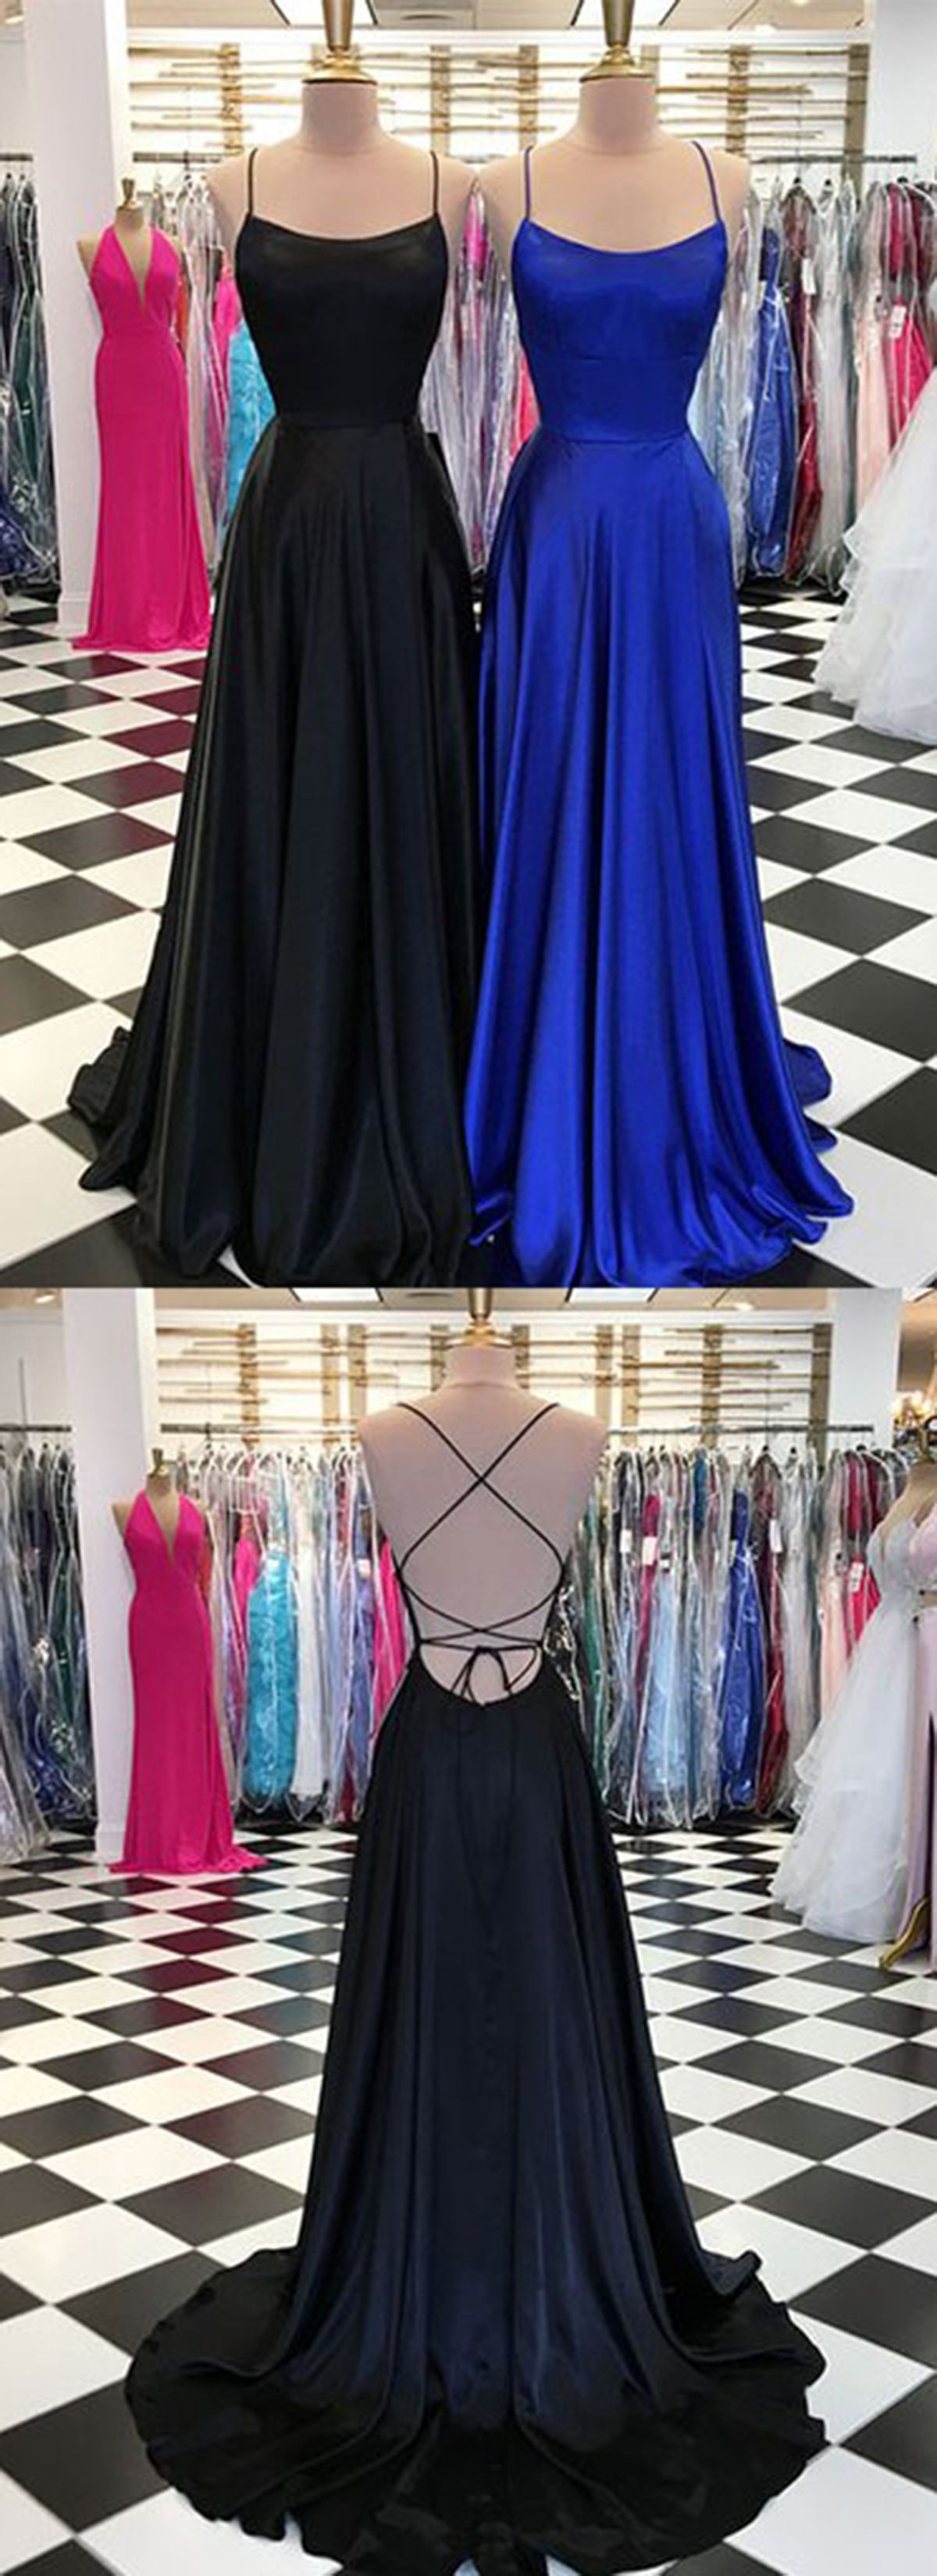 Simple long scoop neck customize prom dress, long open back evening ...